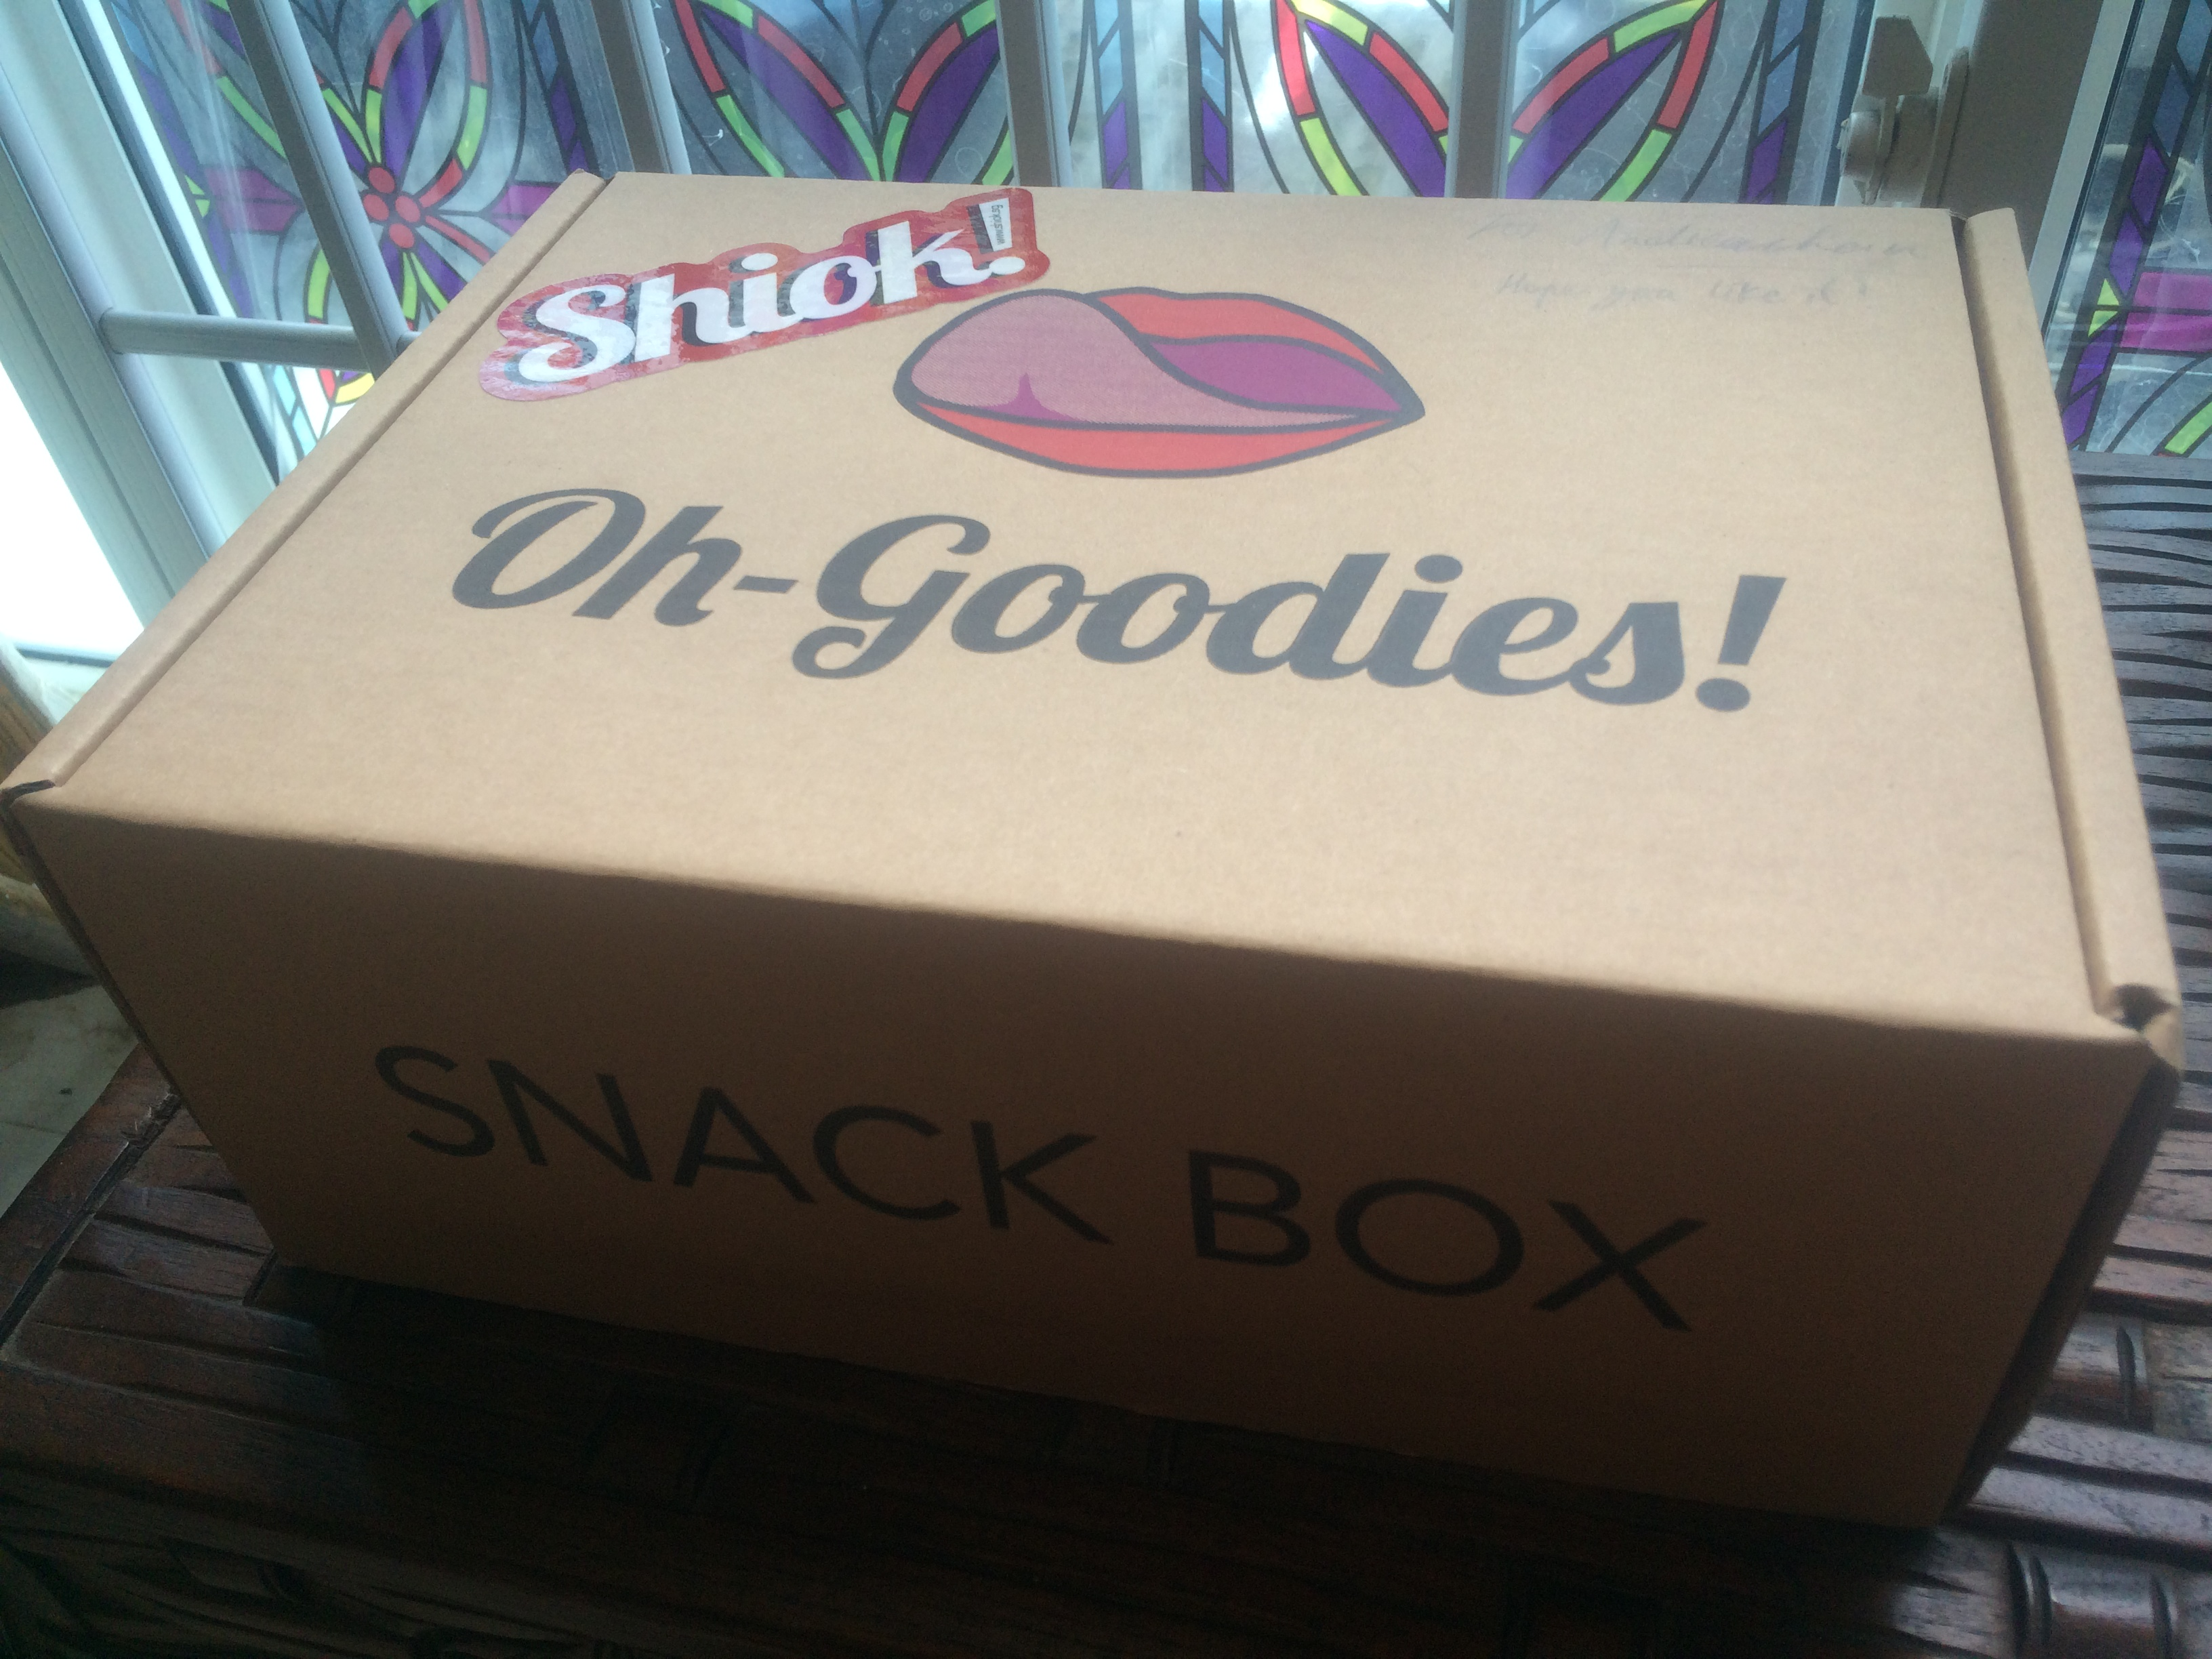 Oh-Goodies Snack Box: June